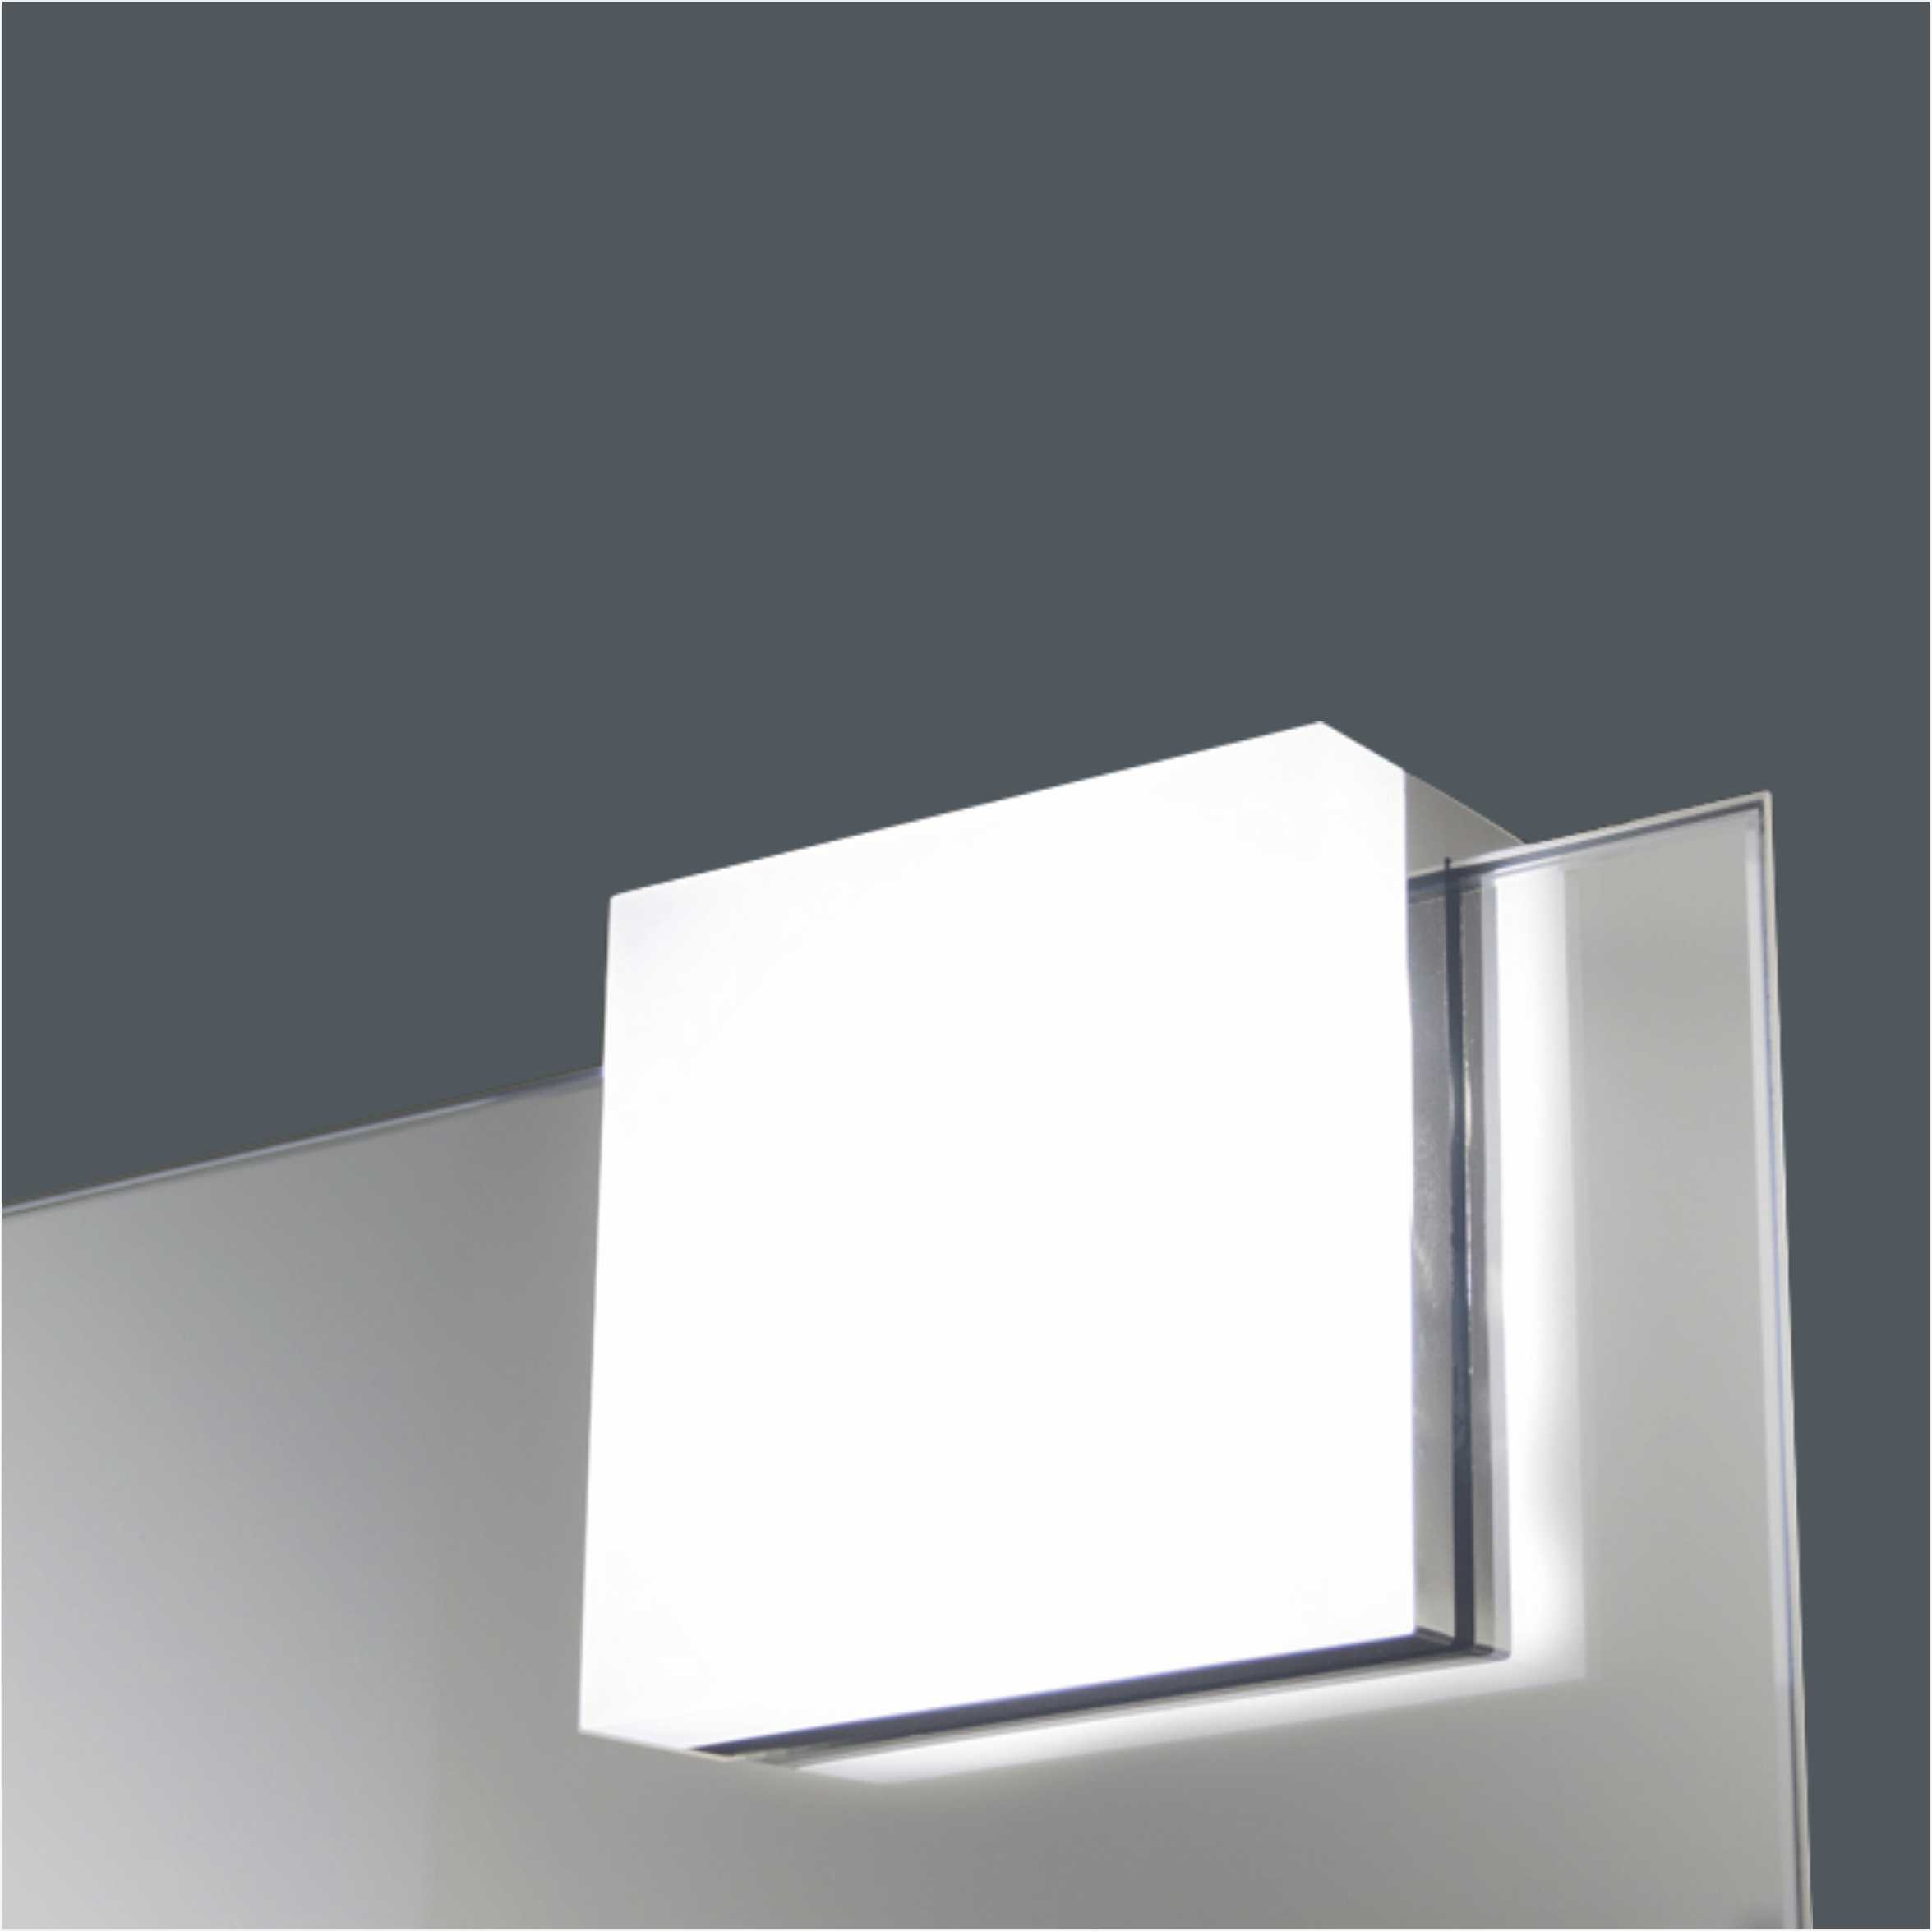 Latest Product Square LED Bathroom Mirror Light 2556